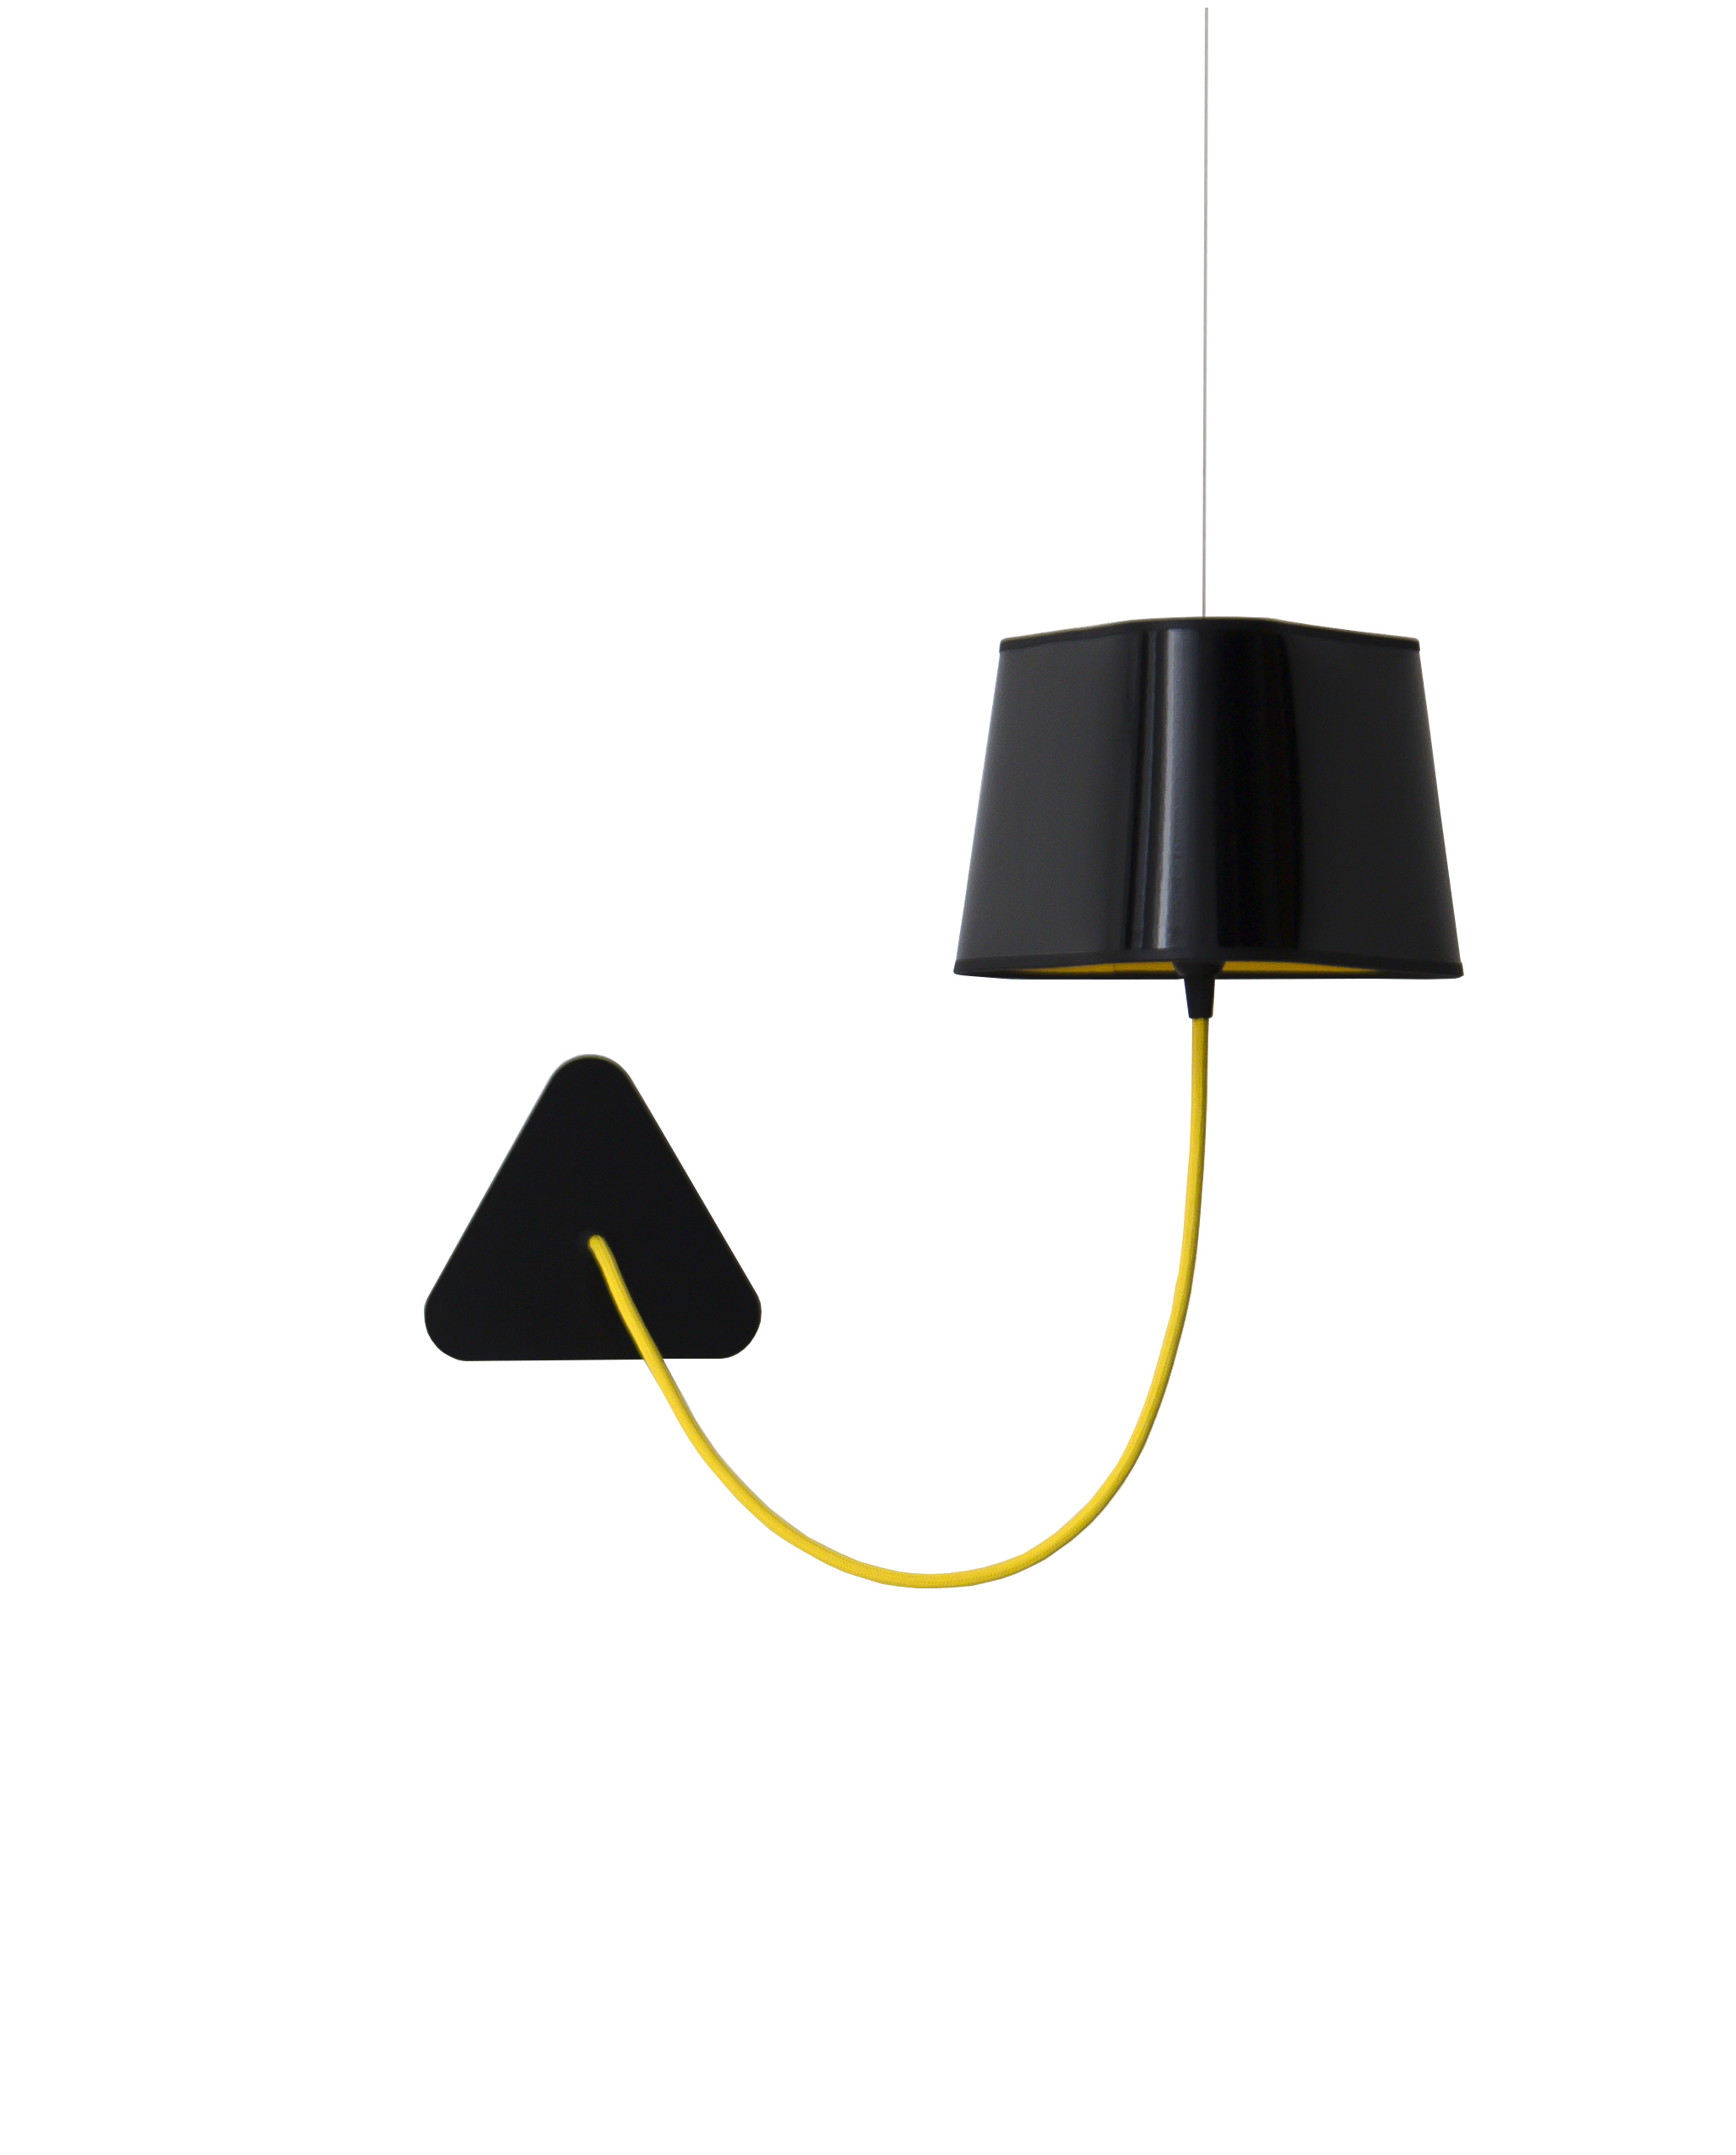 applique murale suspendue petit nuage noir jaune 24cm designheure luminaires nedgis. Black Bedroom Furniture Sets. Home Design Ideas